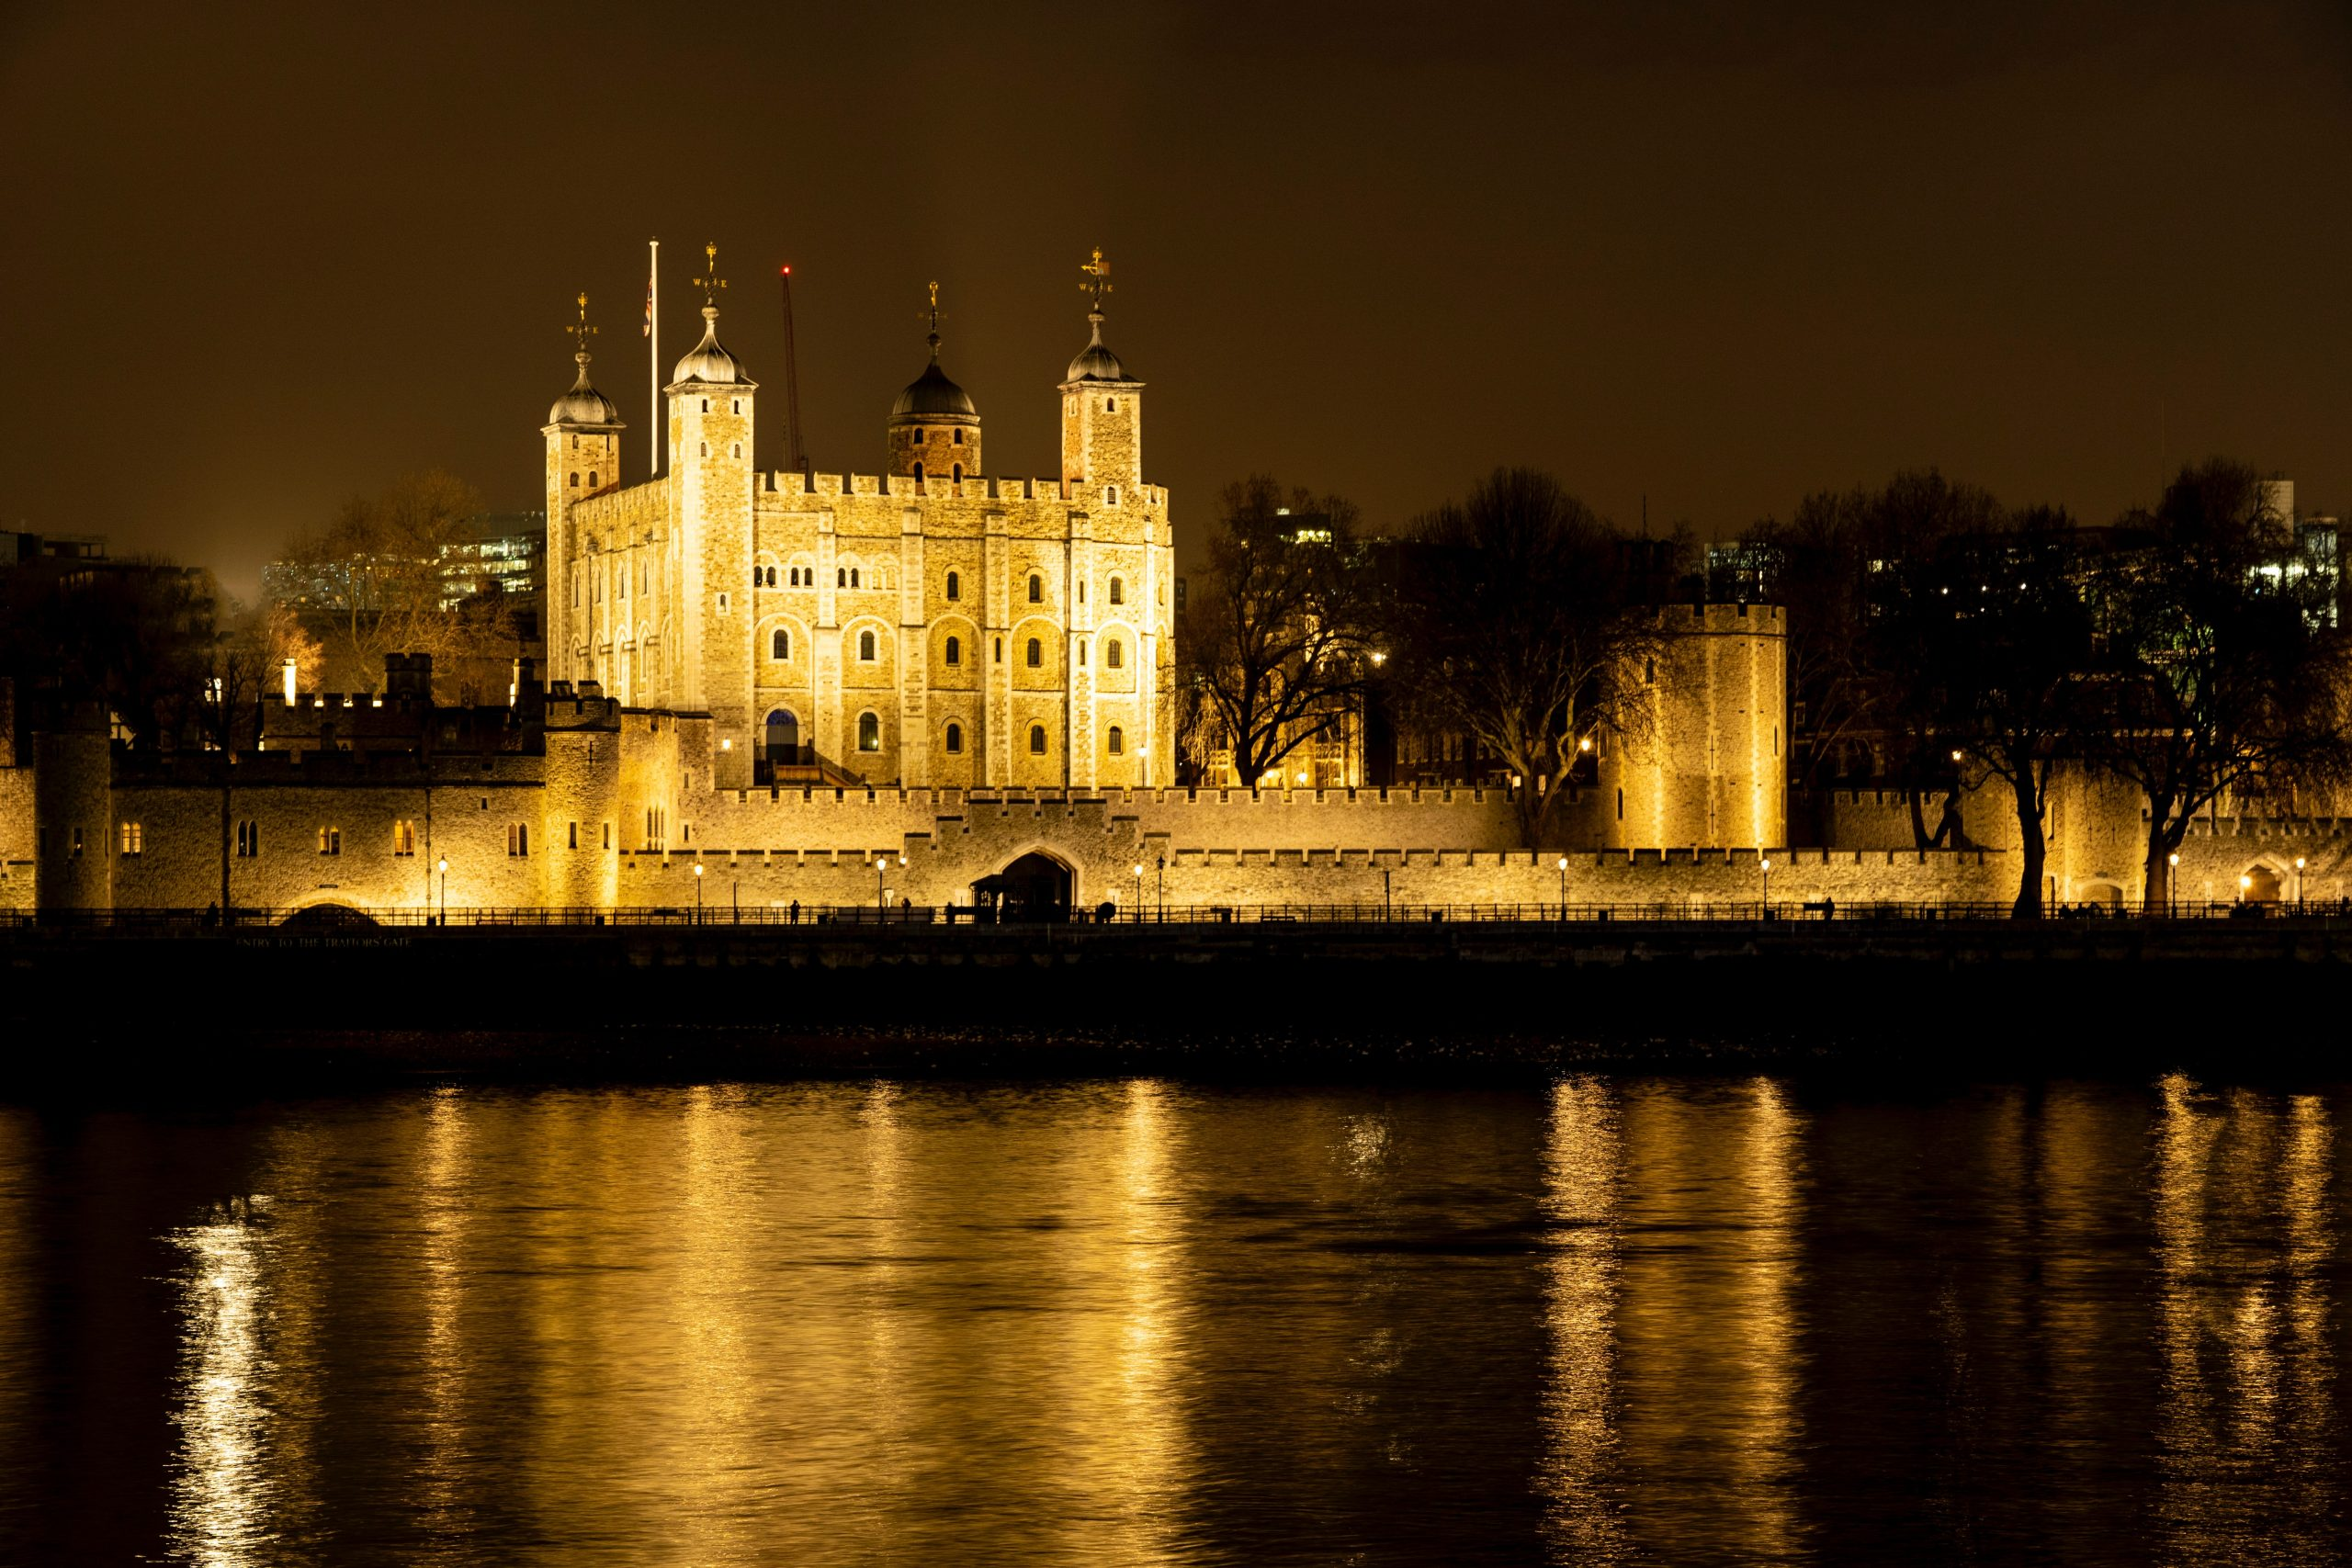 tower of london (Foto: Unsplash)